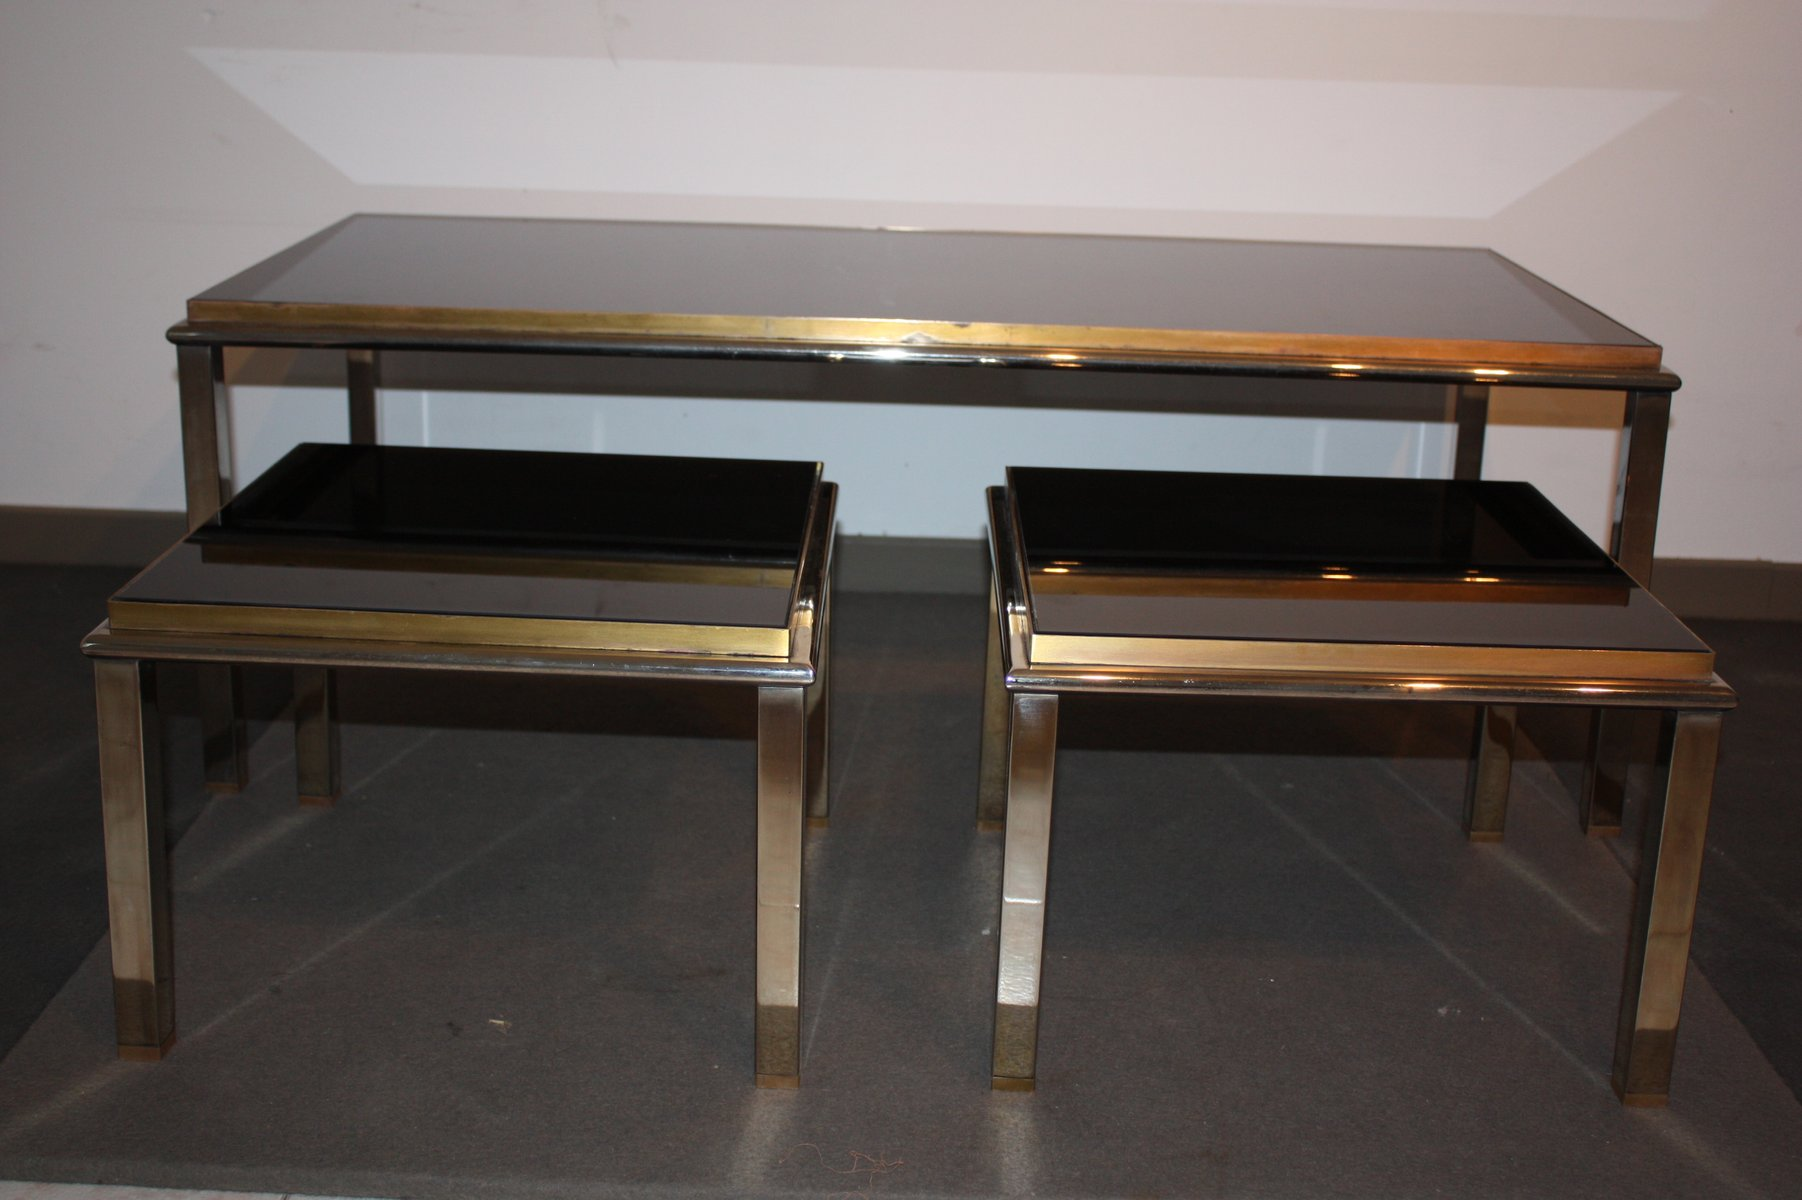 Vintage french glass coffee tables set of 3 for sale at pamono Glass coffee table set